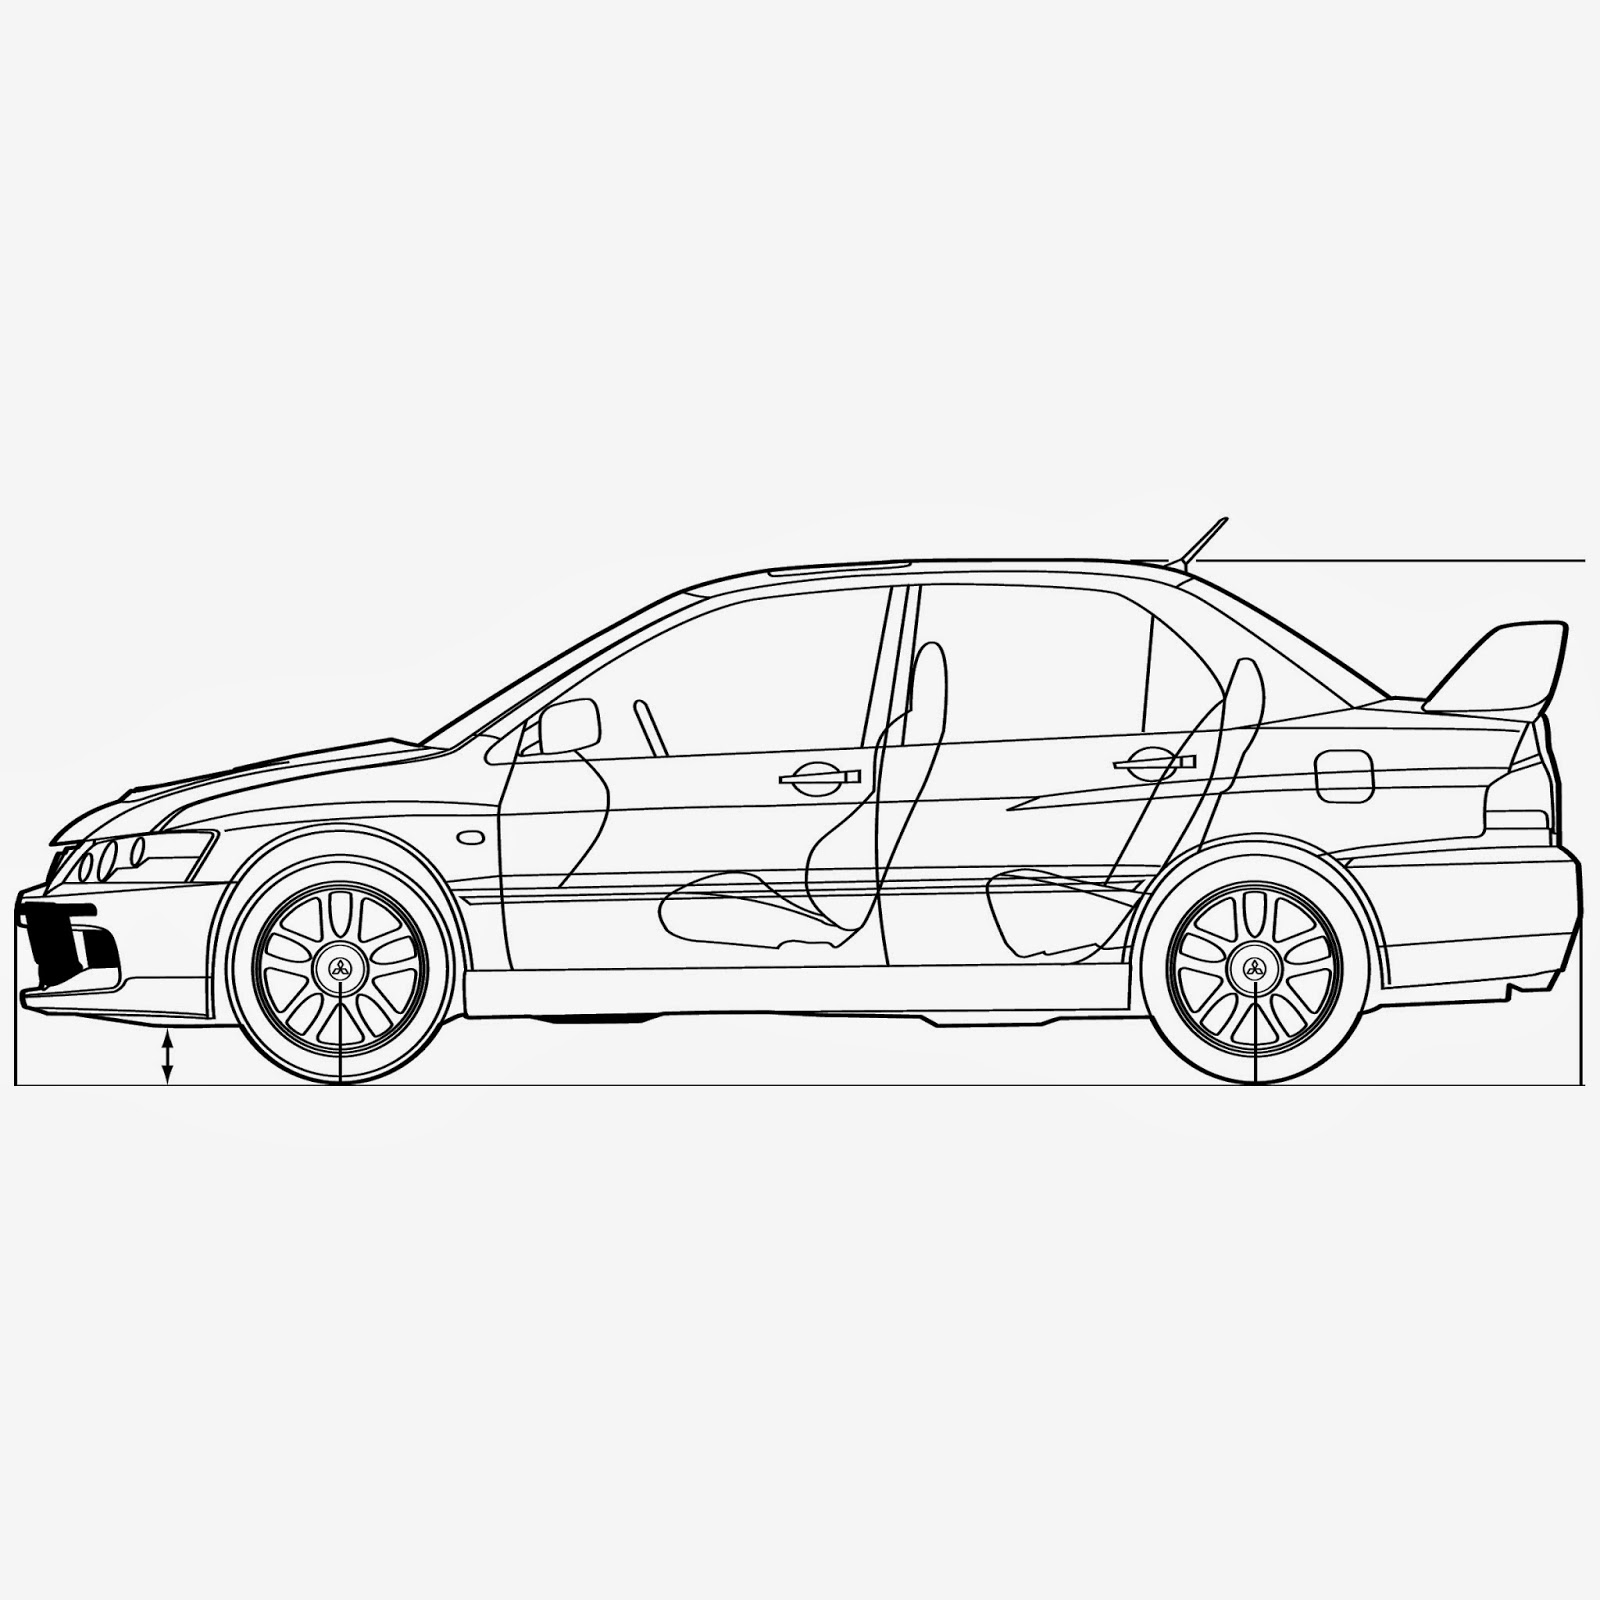 Draw Simple Car.Cars To Rent. Racecar Drawings. Simple Race Car ...